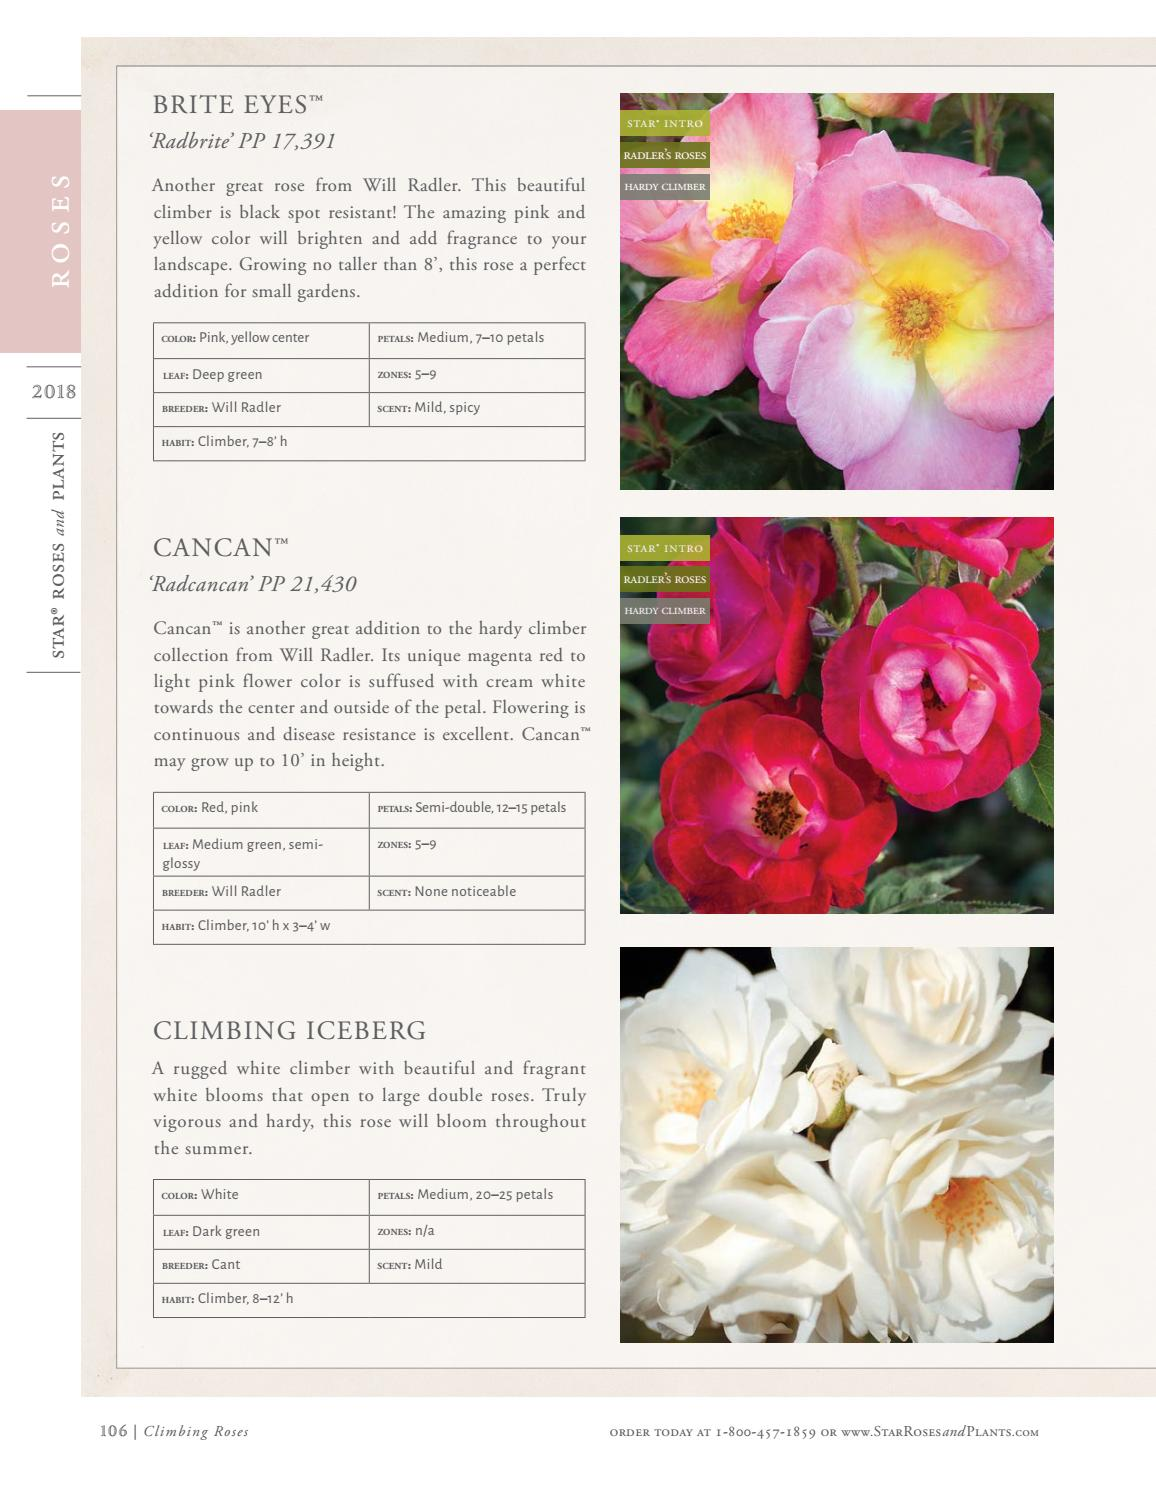 2018 Star Roses And Plants Catalog By Star Roses And Plants Issuu